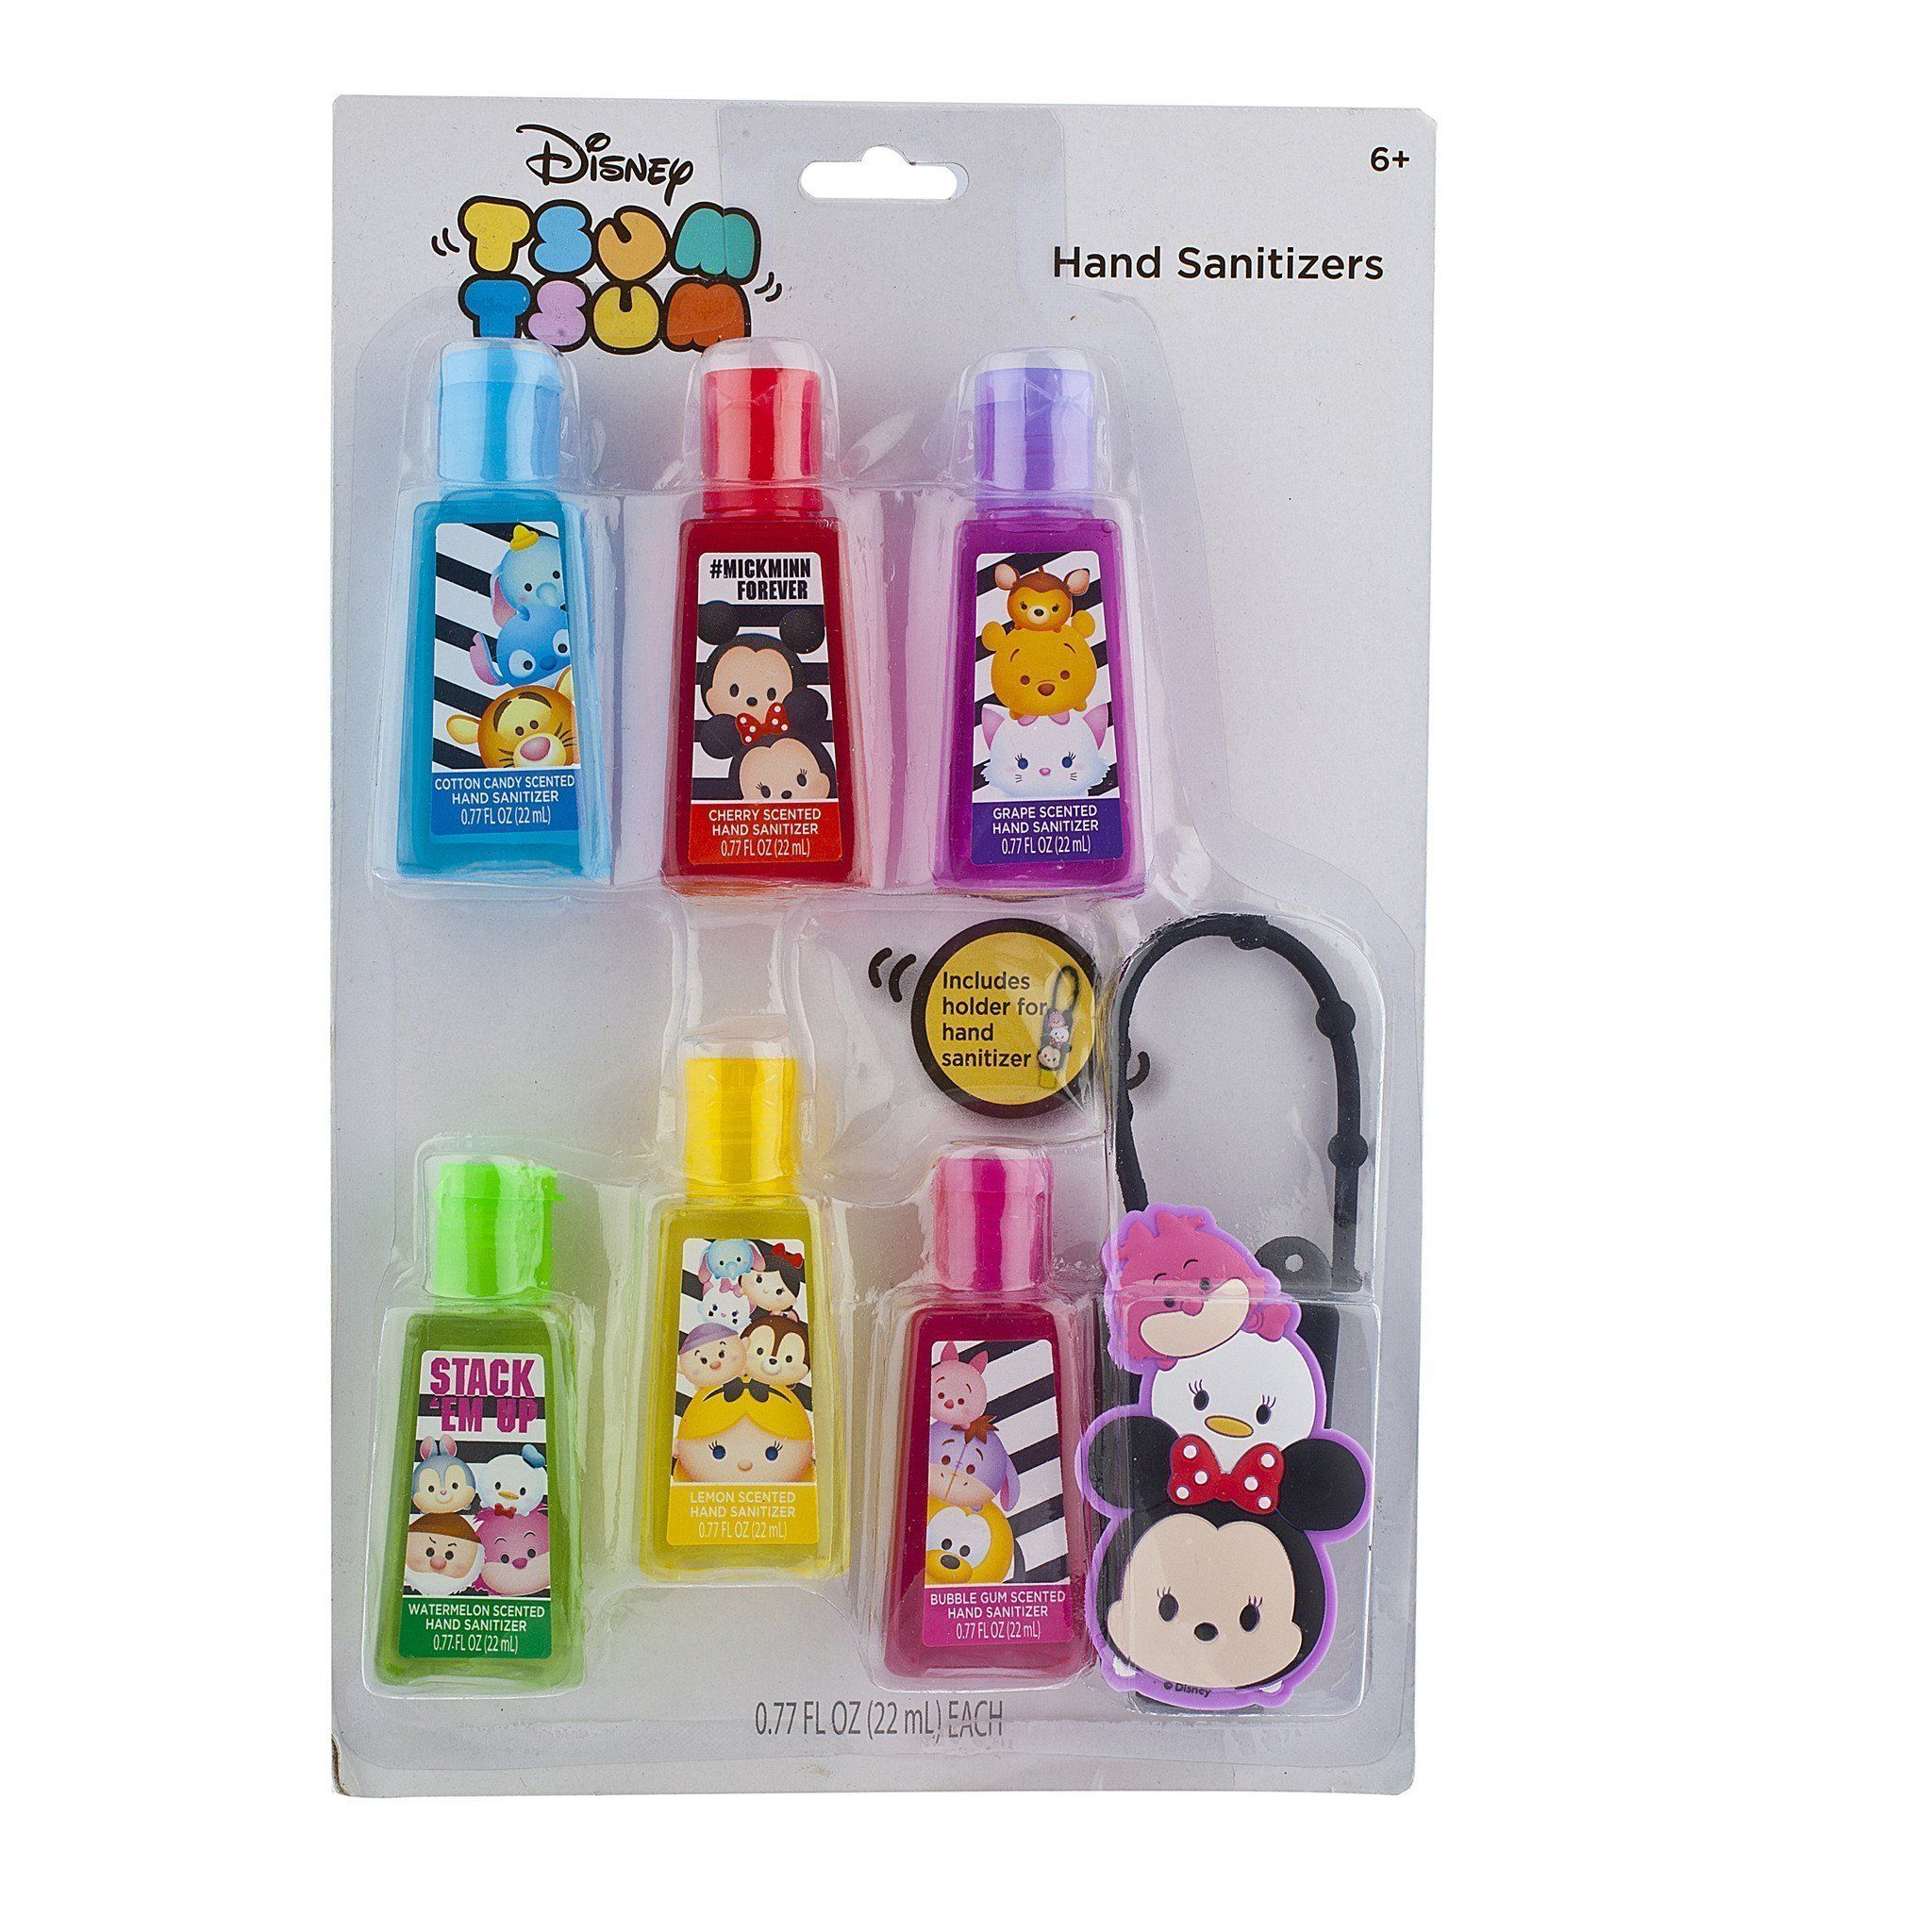 Tsum Tsum 6 Pack Hand Sanitizer With Holder Set Hand Sanitizer